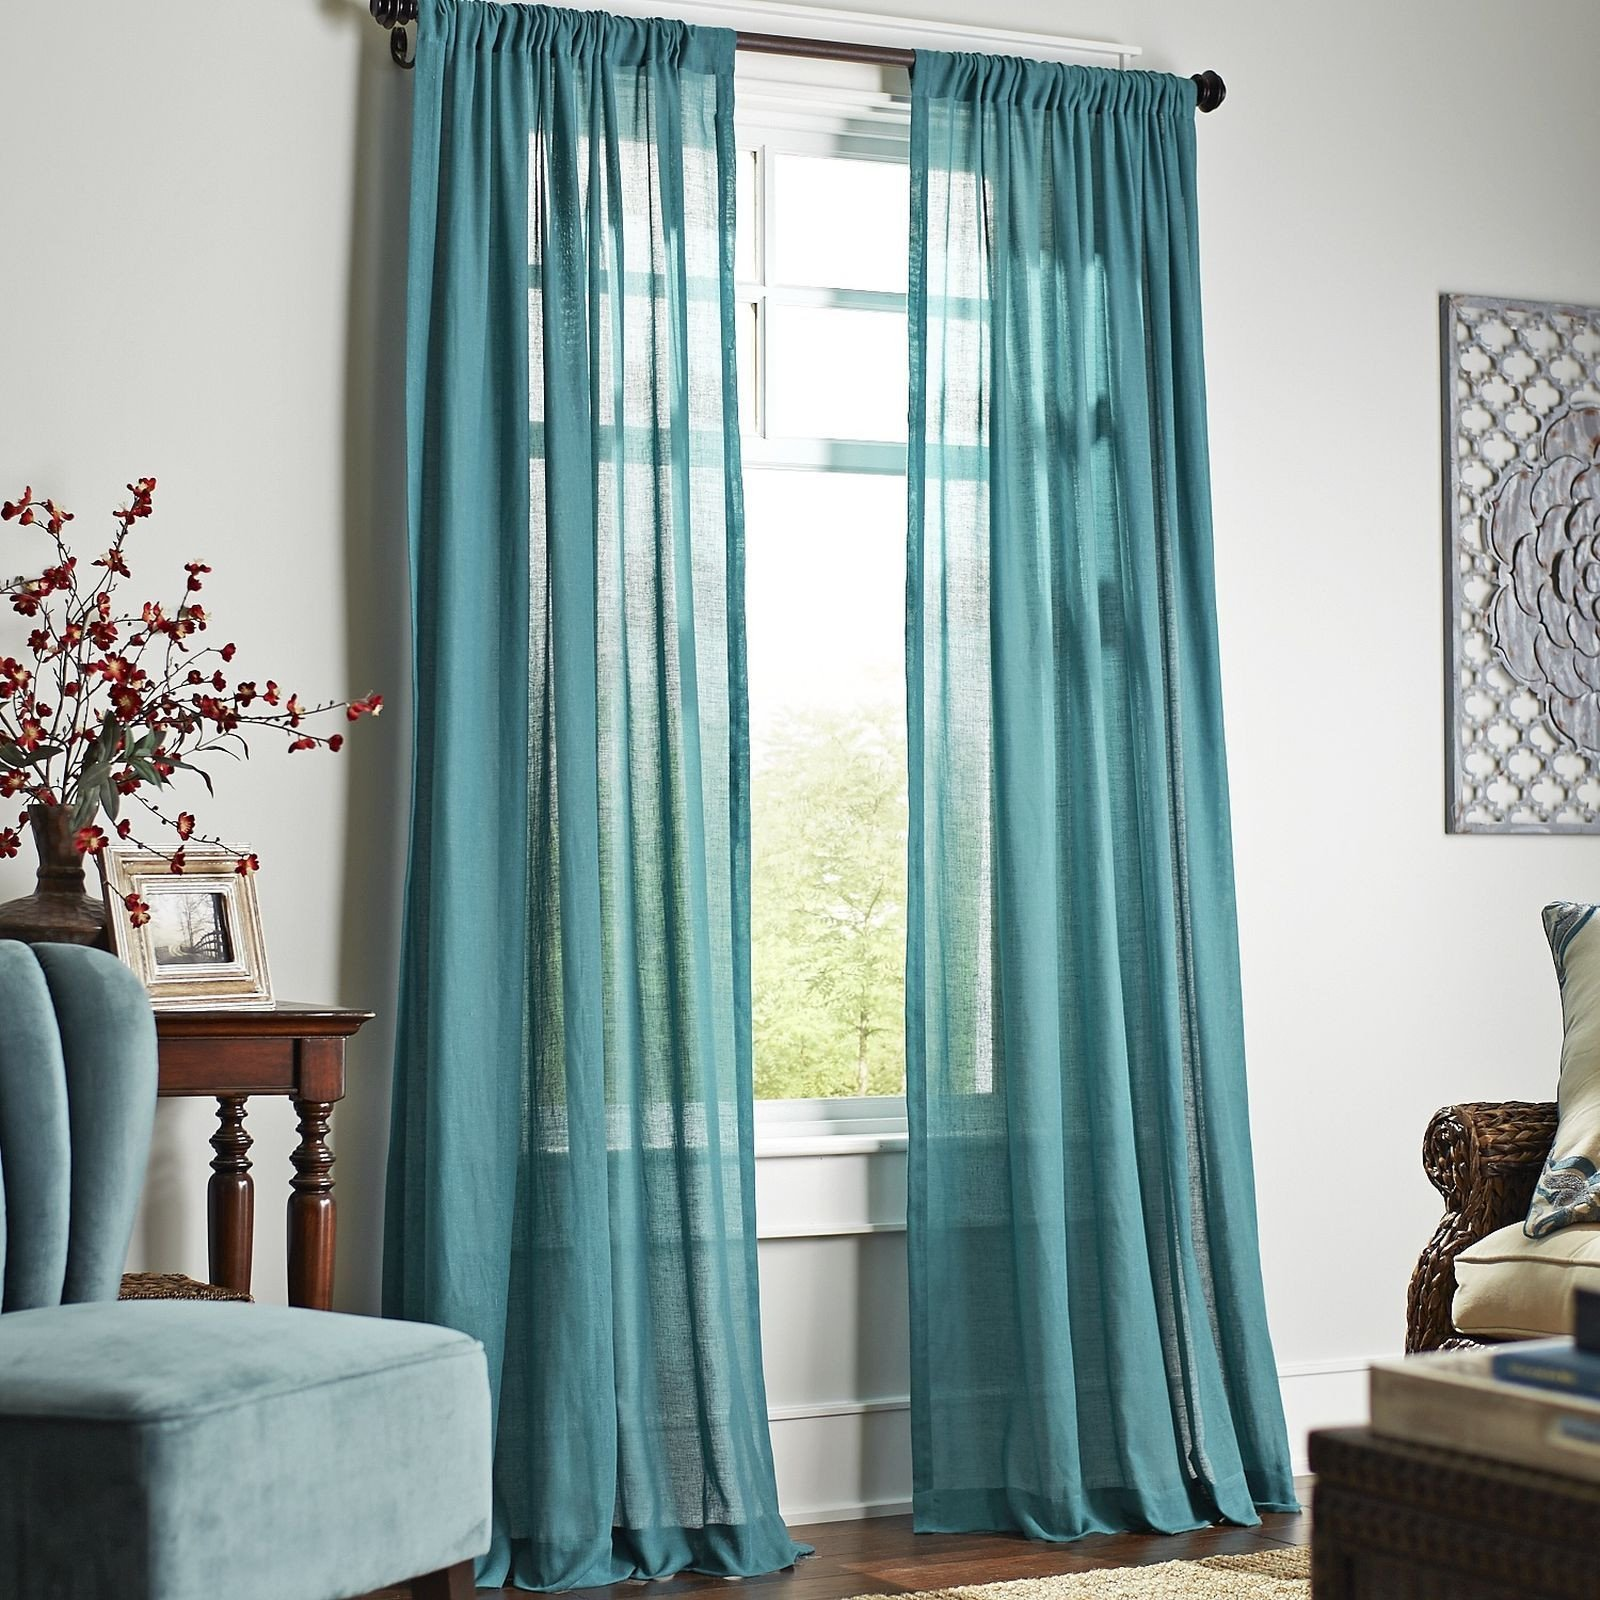 Short Curtains for Bedroom Unique Quinn Sheer Curtain Teal Pier 1 Imports